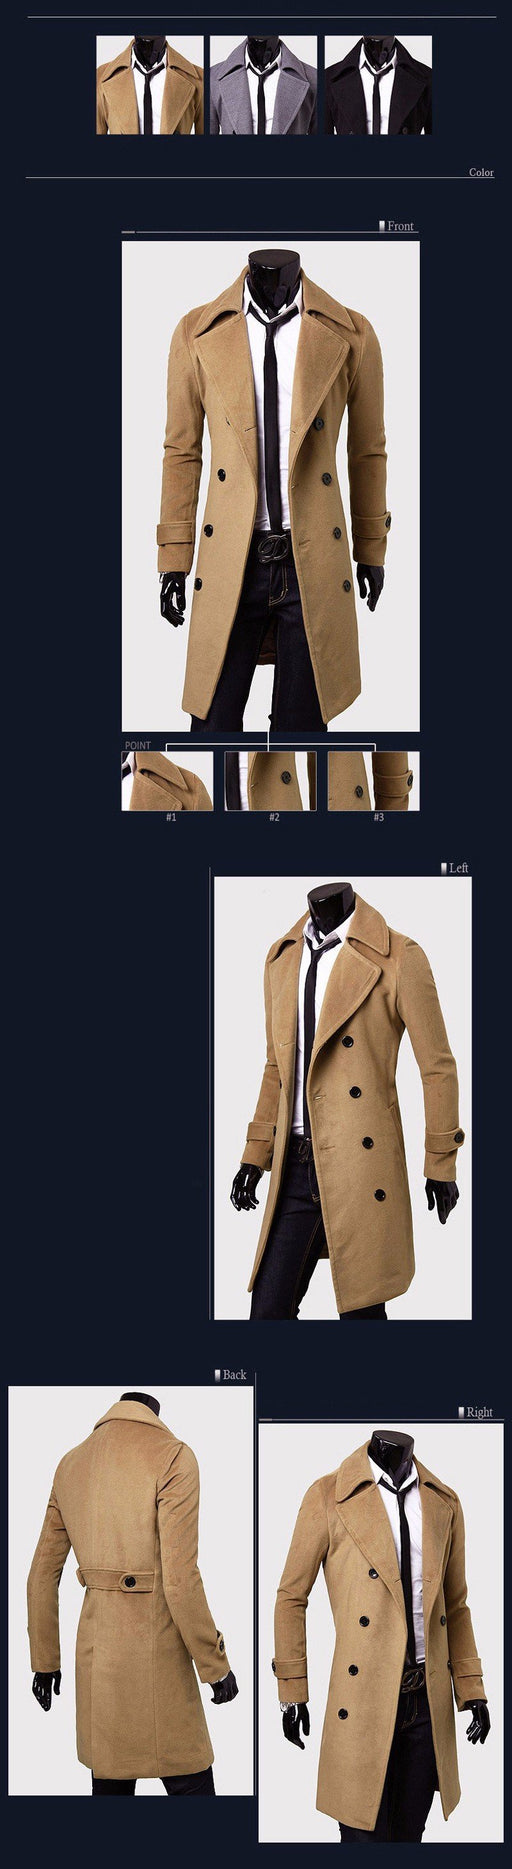 Men's Fashion Designer Double-Breasted Windproof Slim Long Trench Coat - SolaceConnect.com